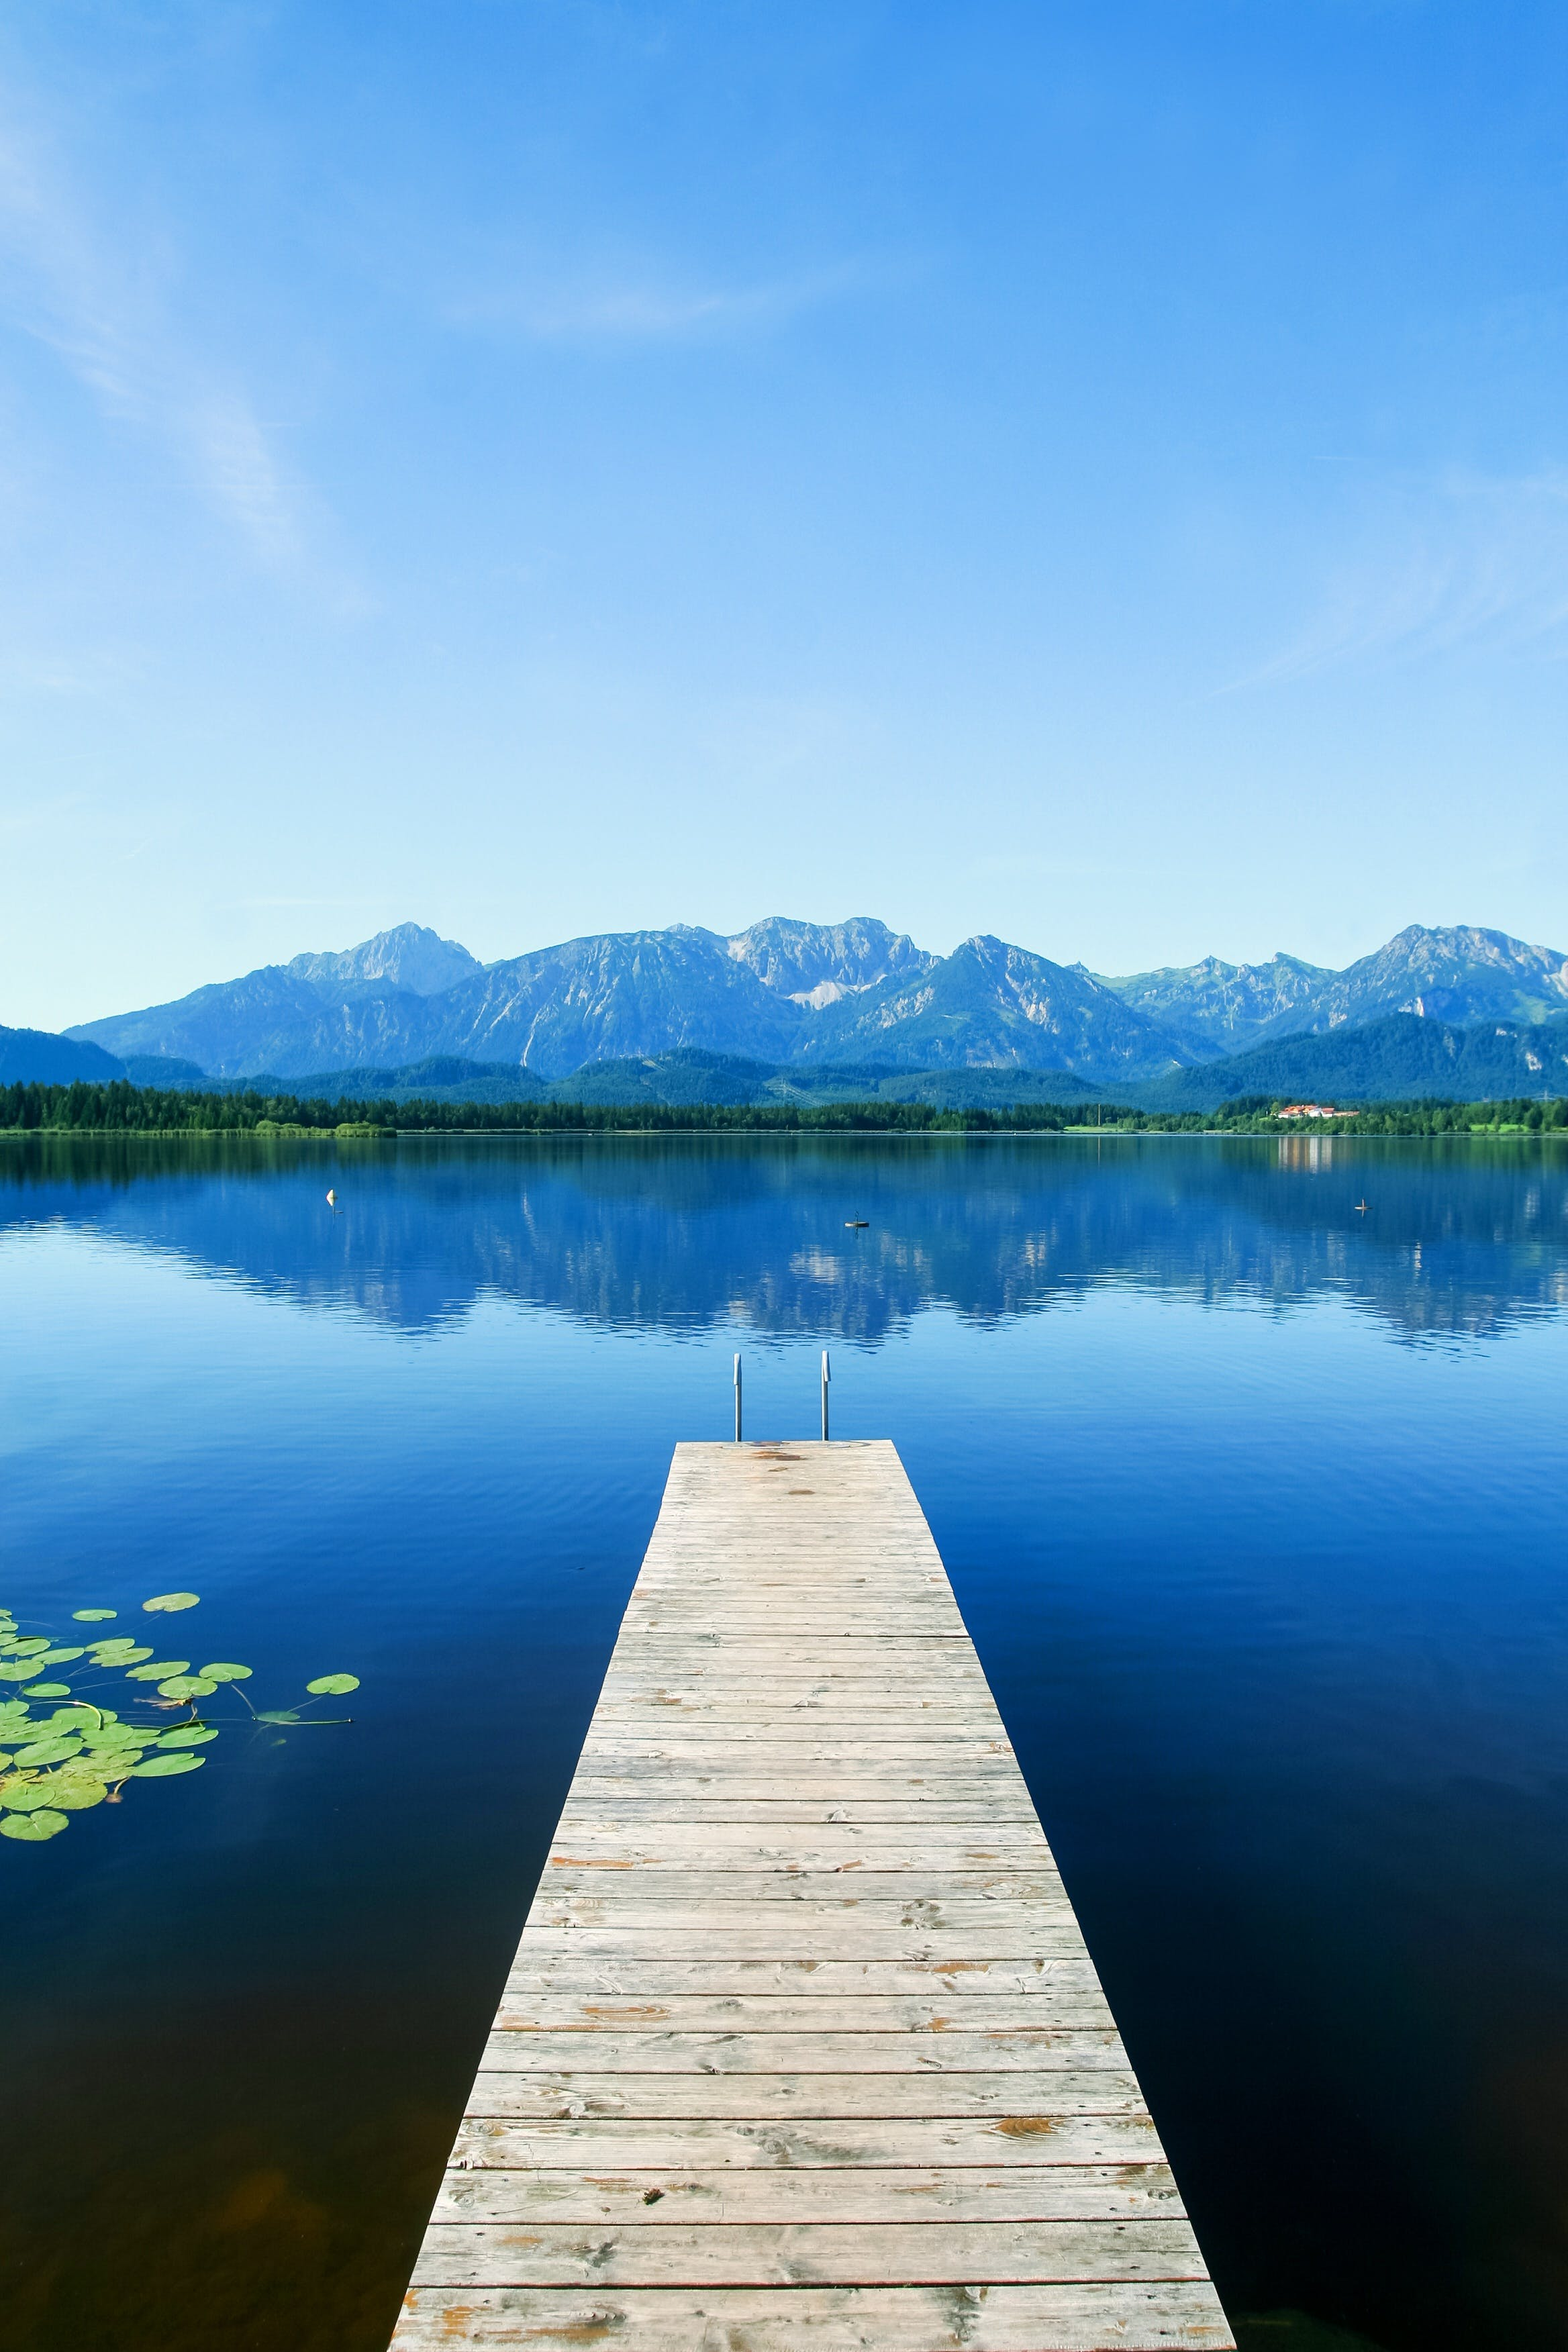 Free stock photo of jetty, mountains, water, lake